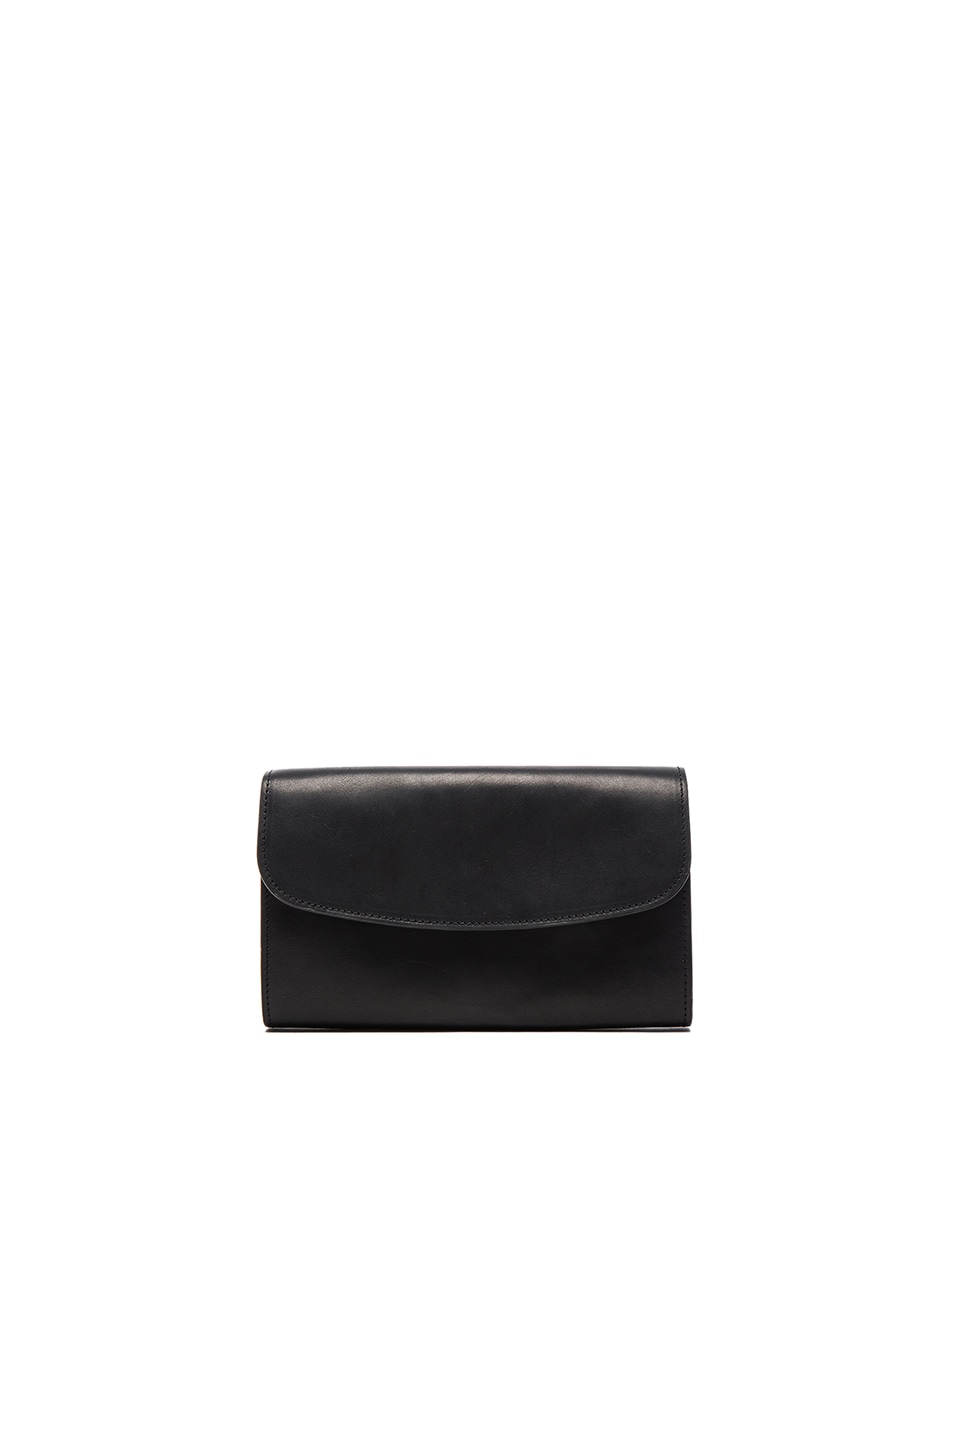 Image 1 of Ann Demeulemeester Wallet in Black